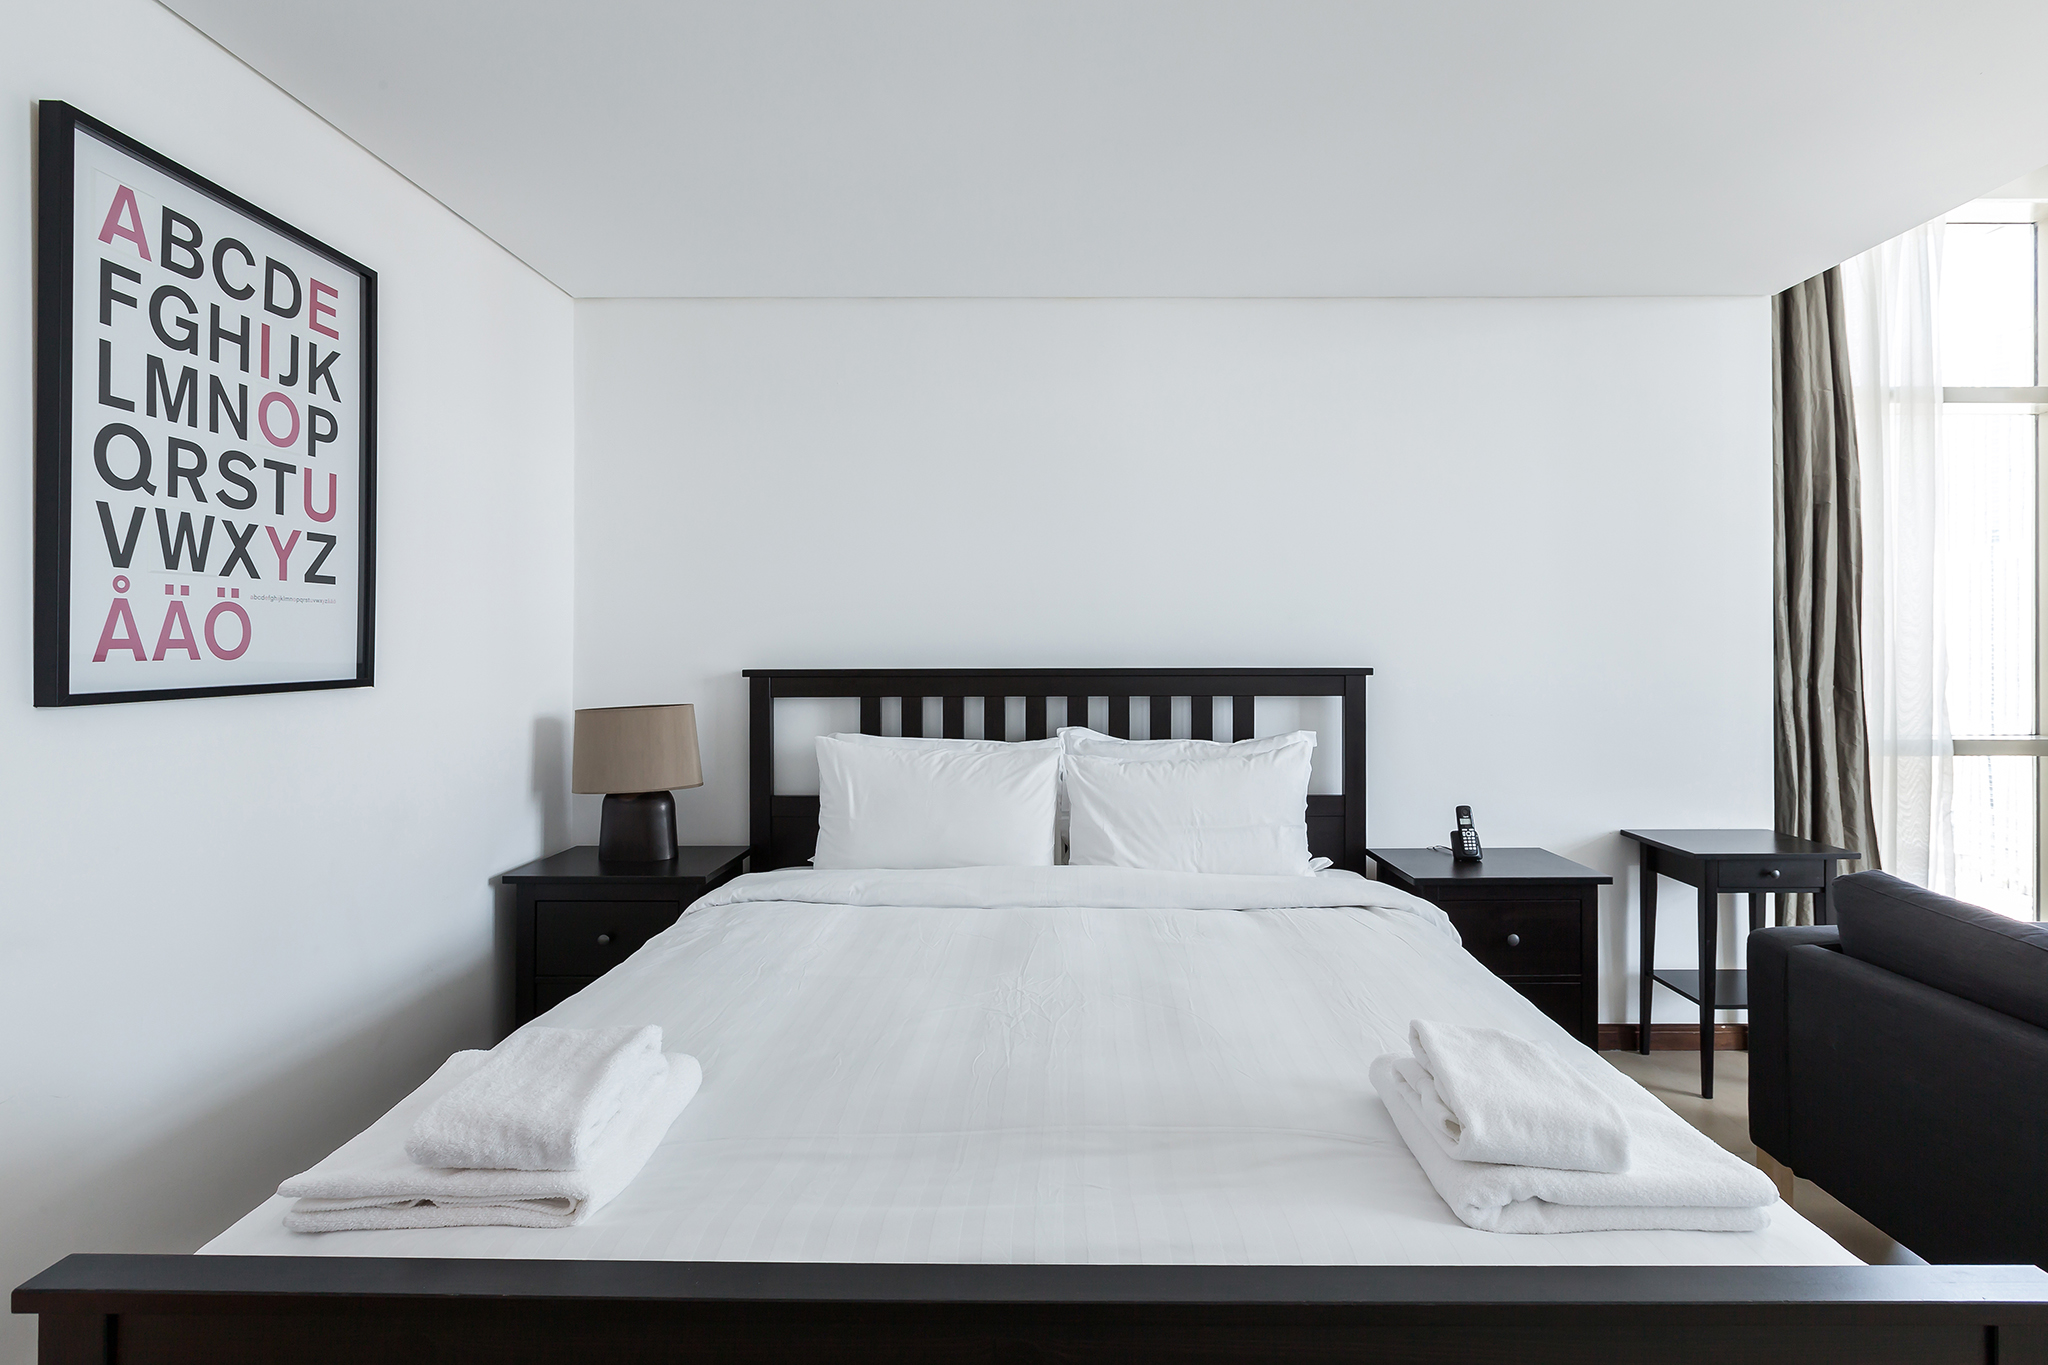 You will be sleeping in a king-sized bed with soft and firm pillows all the way delivered all the way from London